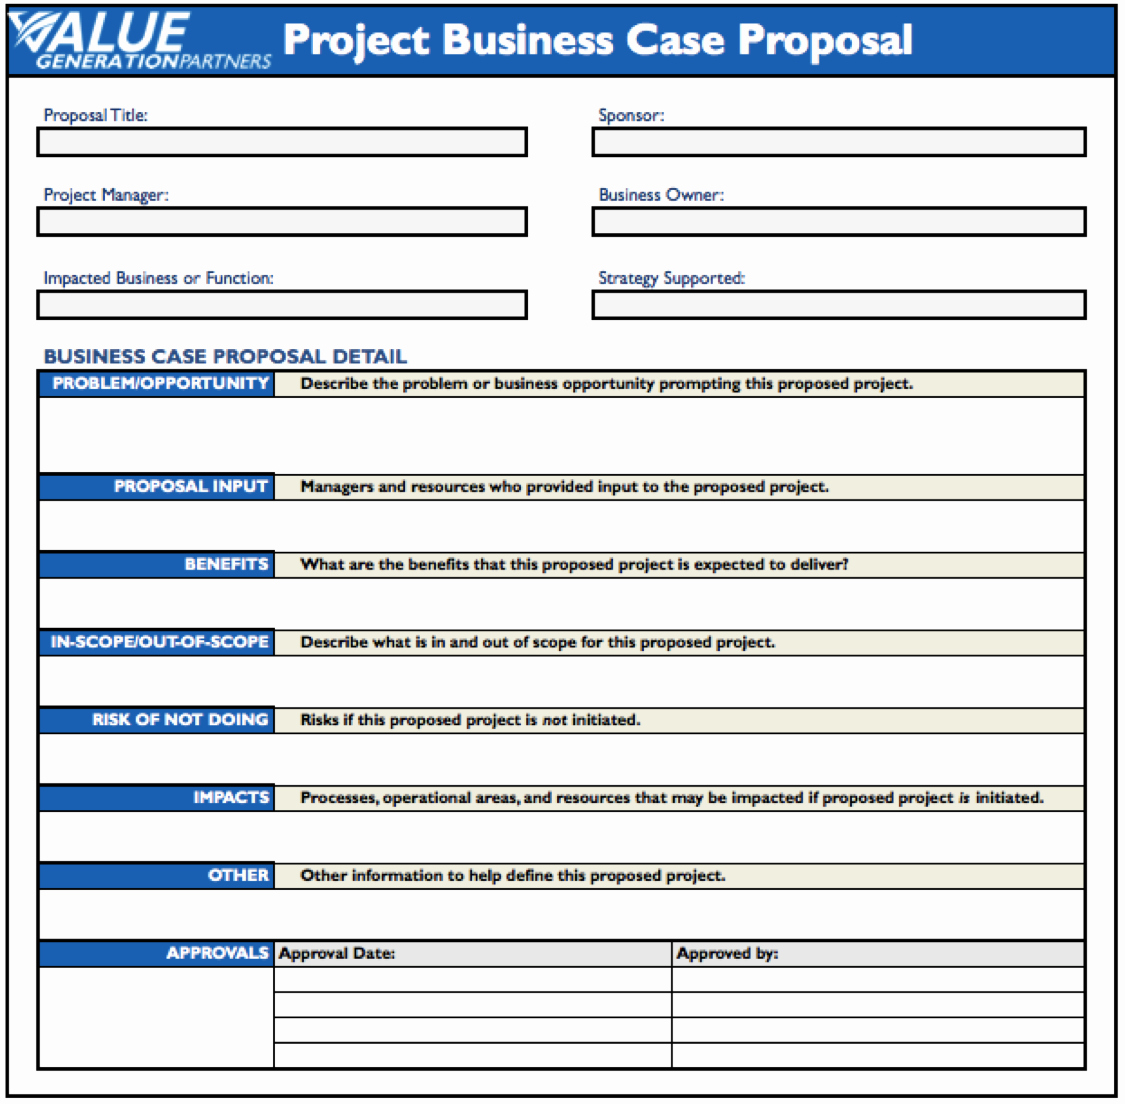 Use Case Template Excel Inspirational Business Case Template